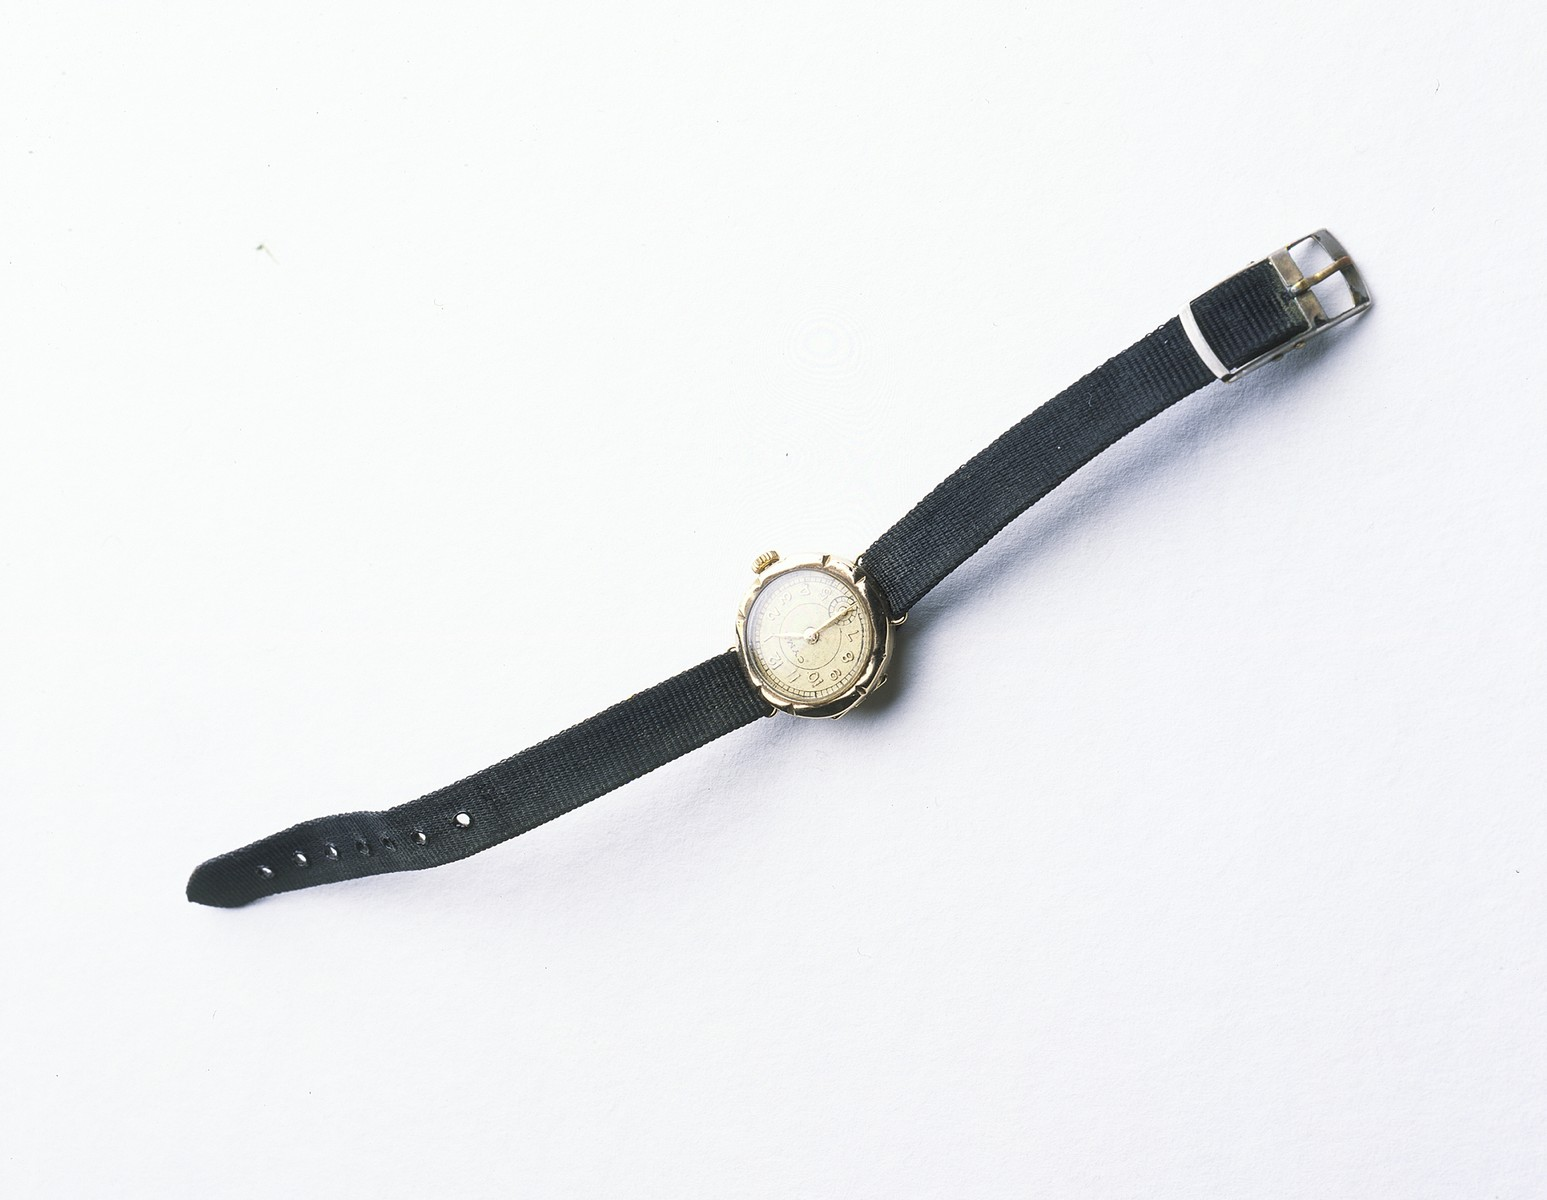 A watch given to Anna Cheszes by her rescuer Madzia Strzelczyk.    In May 1943, Dora Kaplan was able to smuggle a women's gold watch out of the Bialystok ghetto via Michal Kempinski for her daughter, Pola (later Anna Strzelczyk).  In the late 1960s, Madzia visited Anna and gave her the watch as a high school graduation gift with no explanation.  Anna was not interested in the watch.  Anna learned the truth about her birth and the watch only after Madzia's death in 1972.